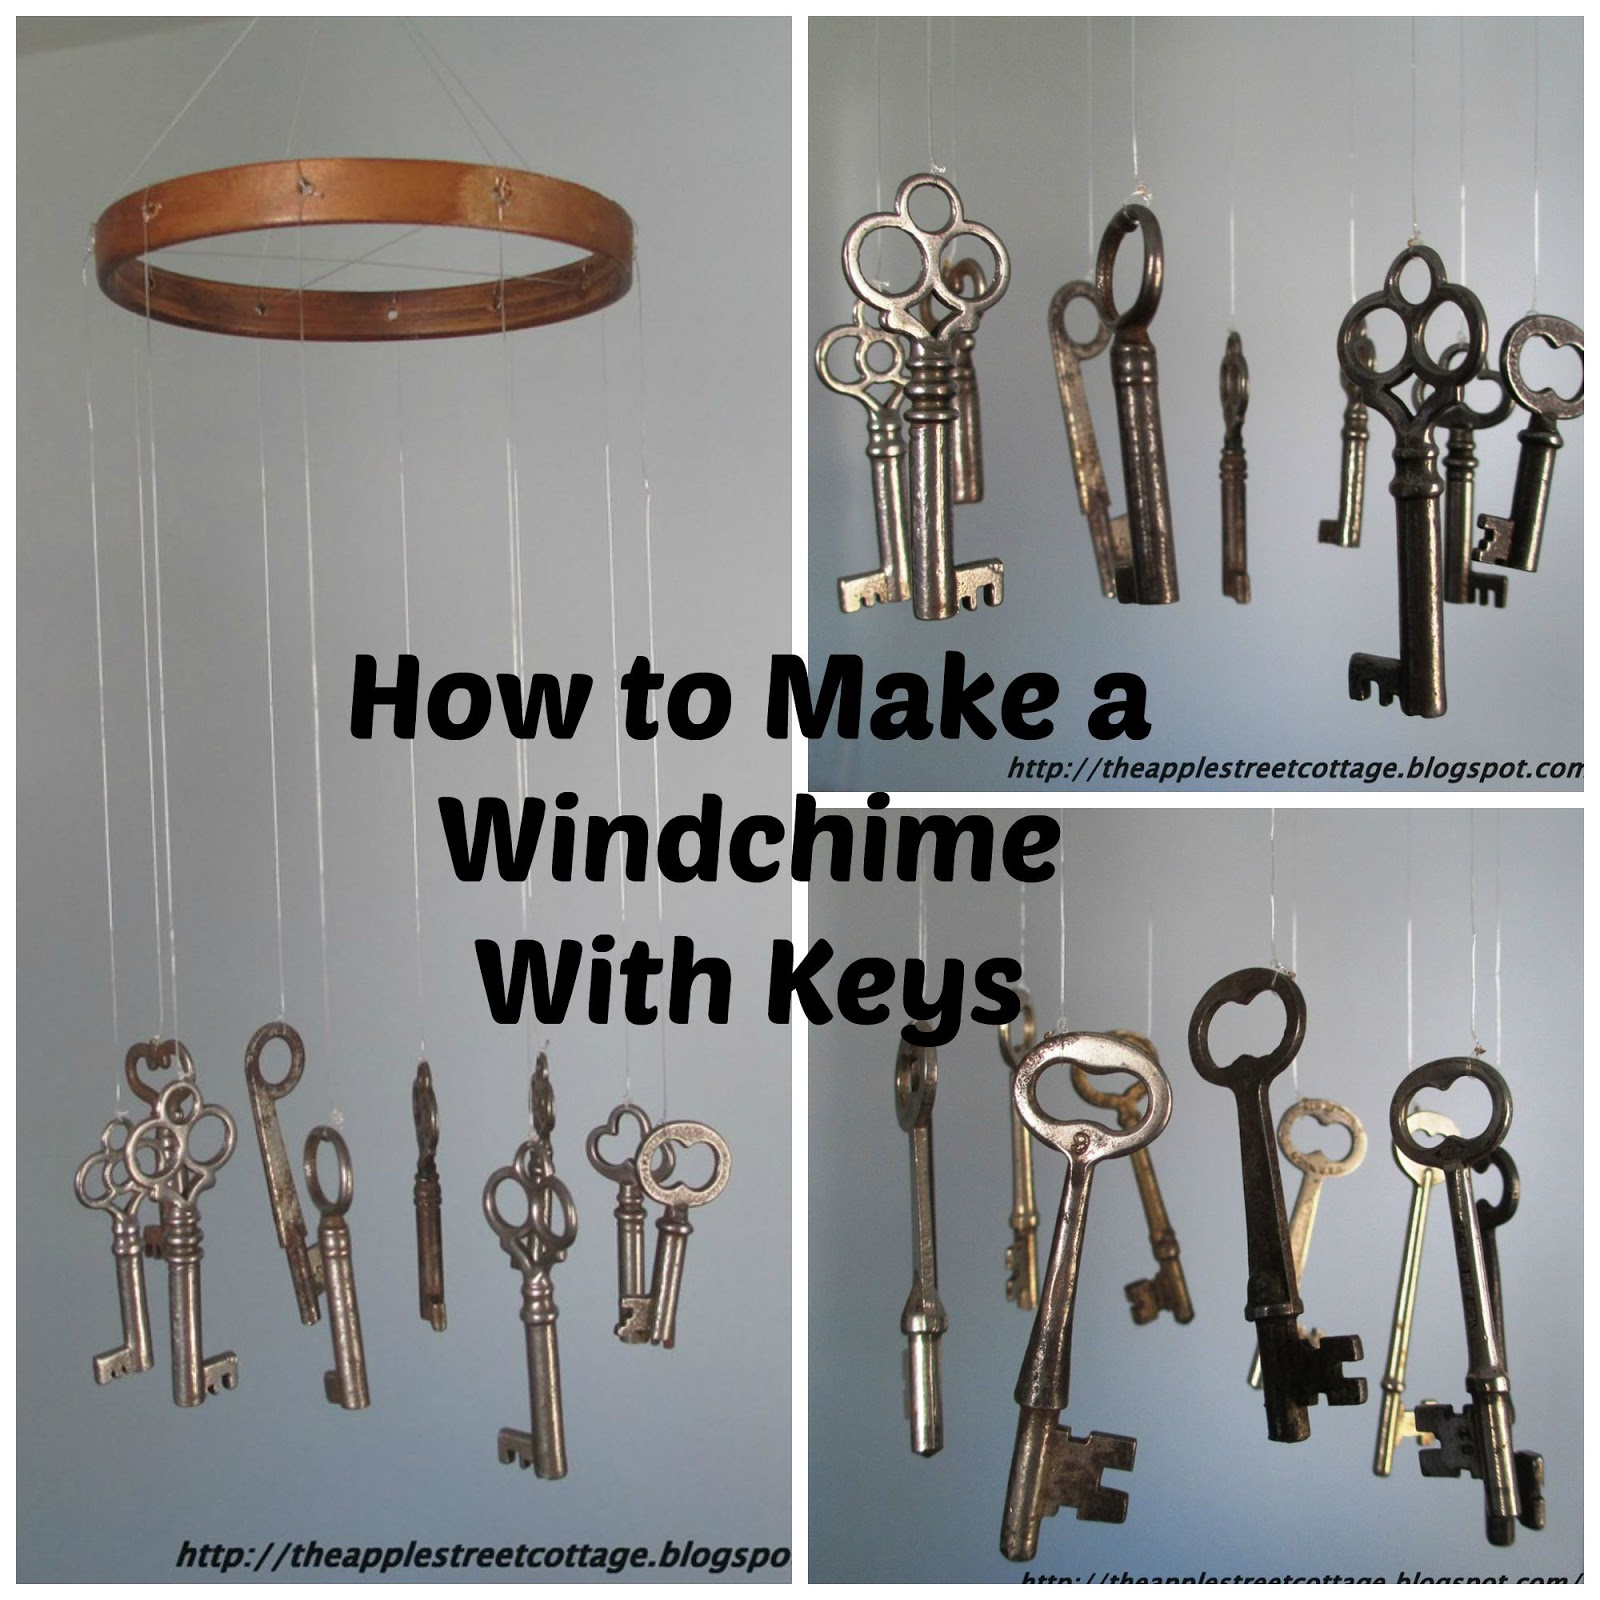 How To Make A Wind Chime The Apple Street Cottage How To Make A Windchimewith Keys